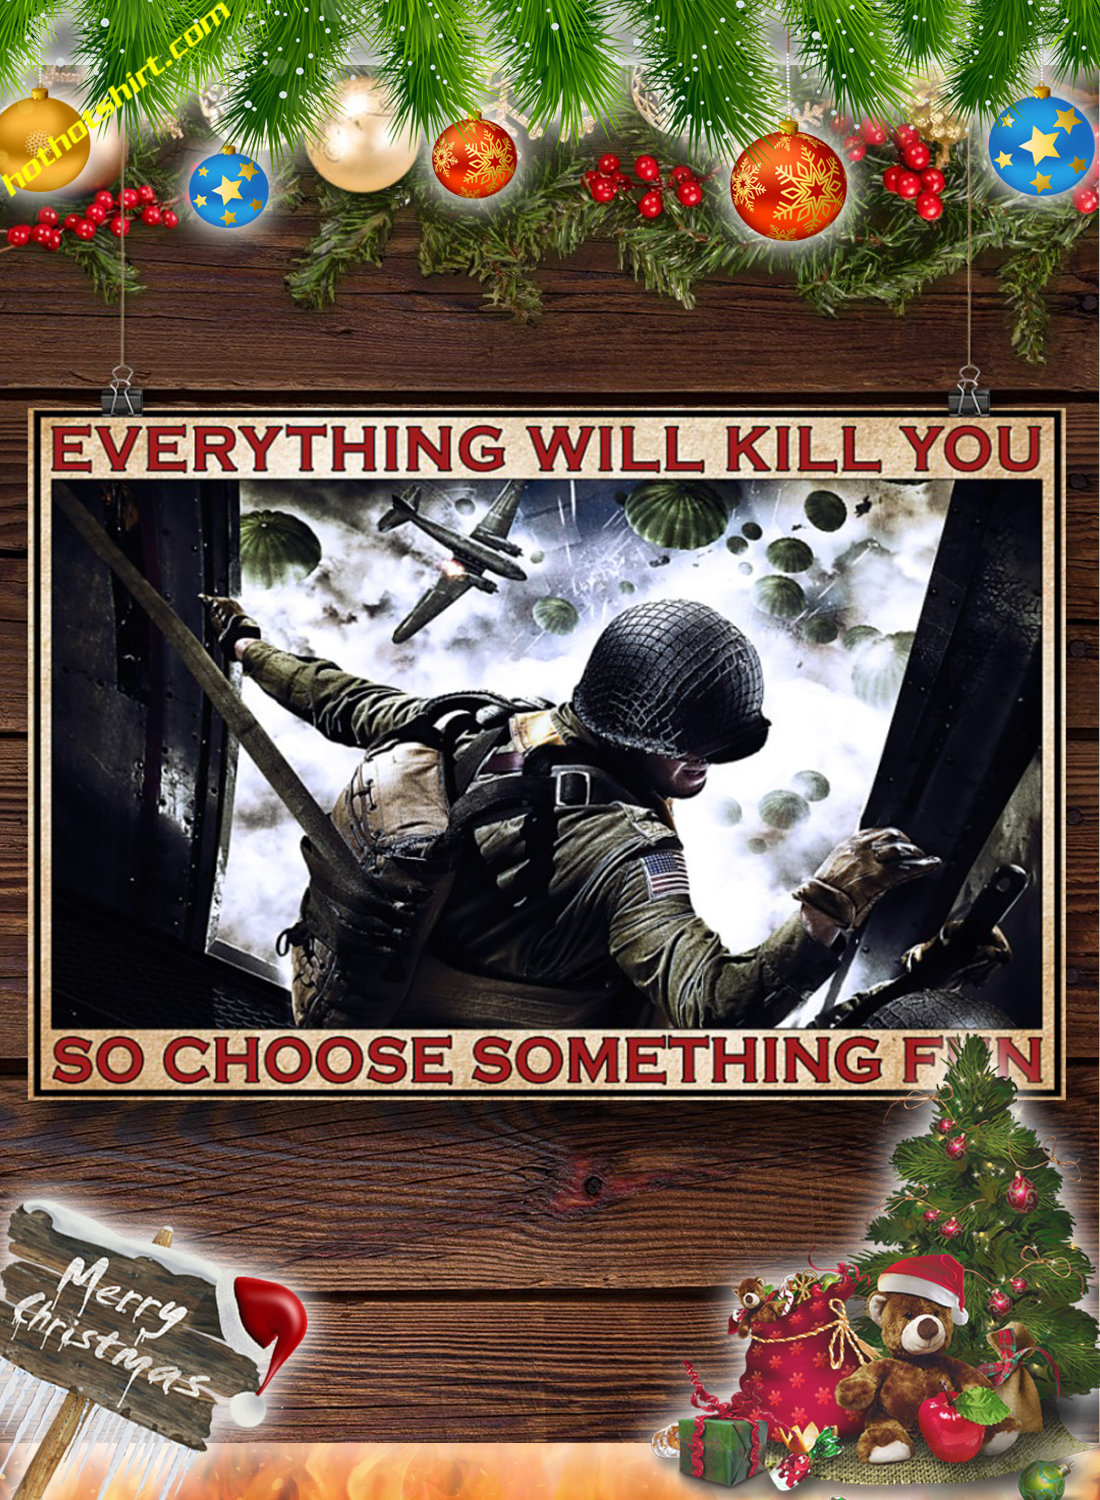 Veteran Airborne Forces Everything will kill you so choose something fun poster 2